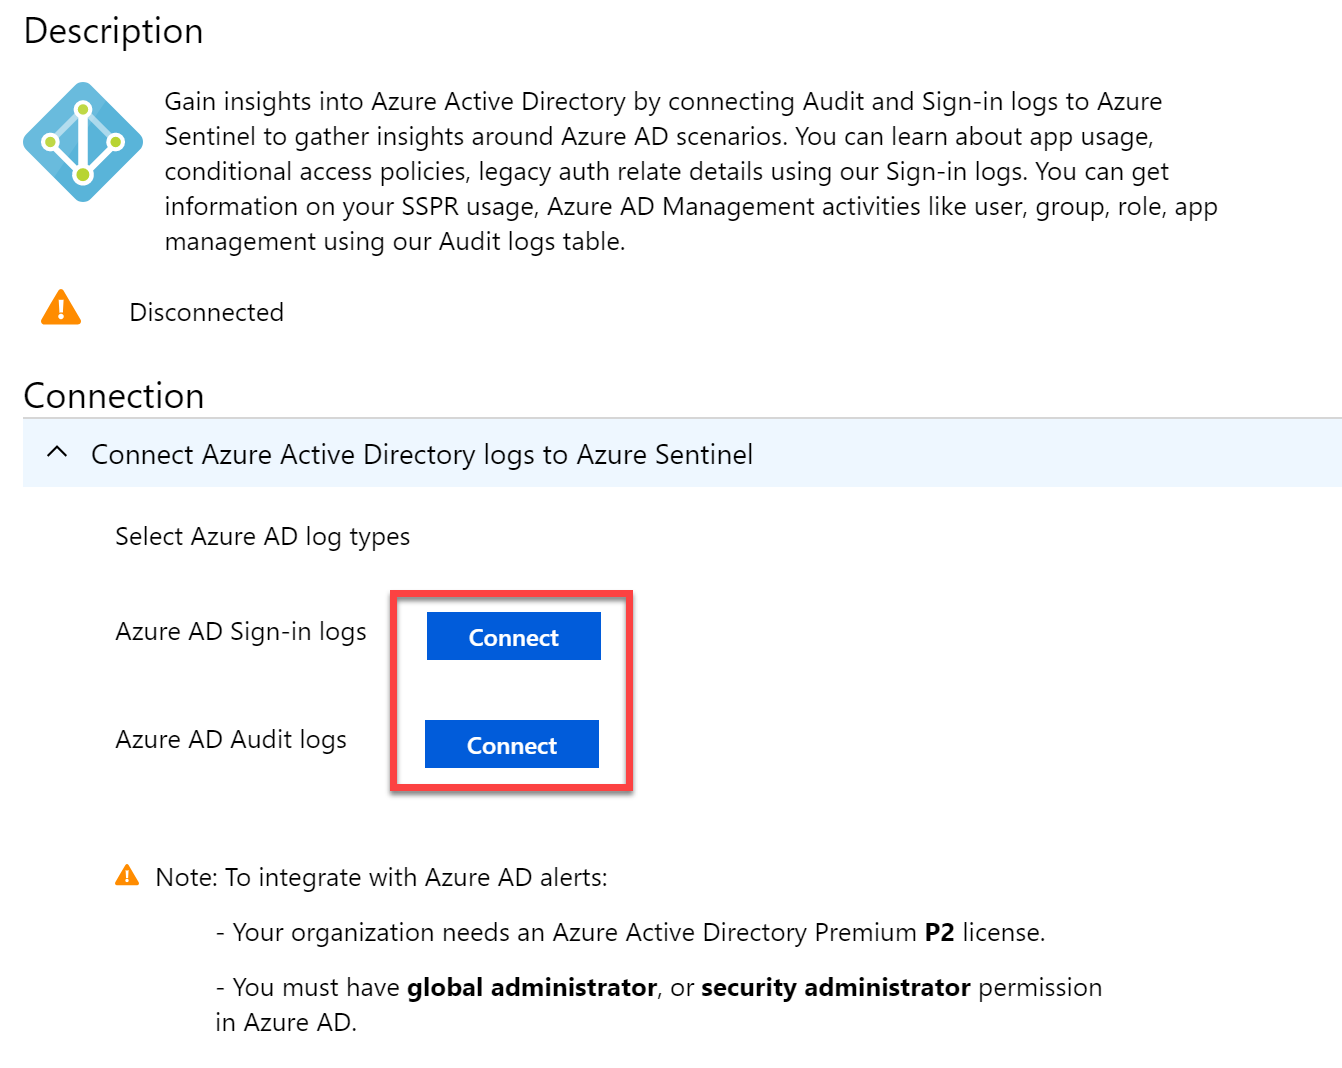 Connect to Azure AD Sign-in logs